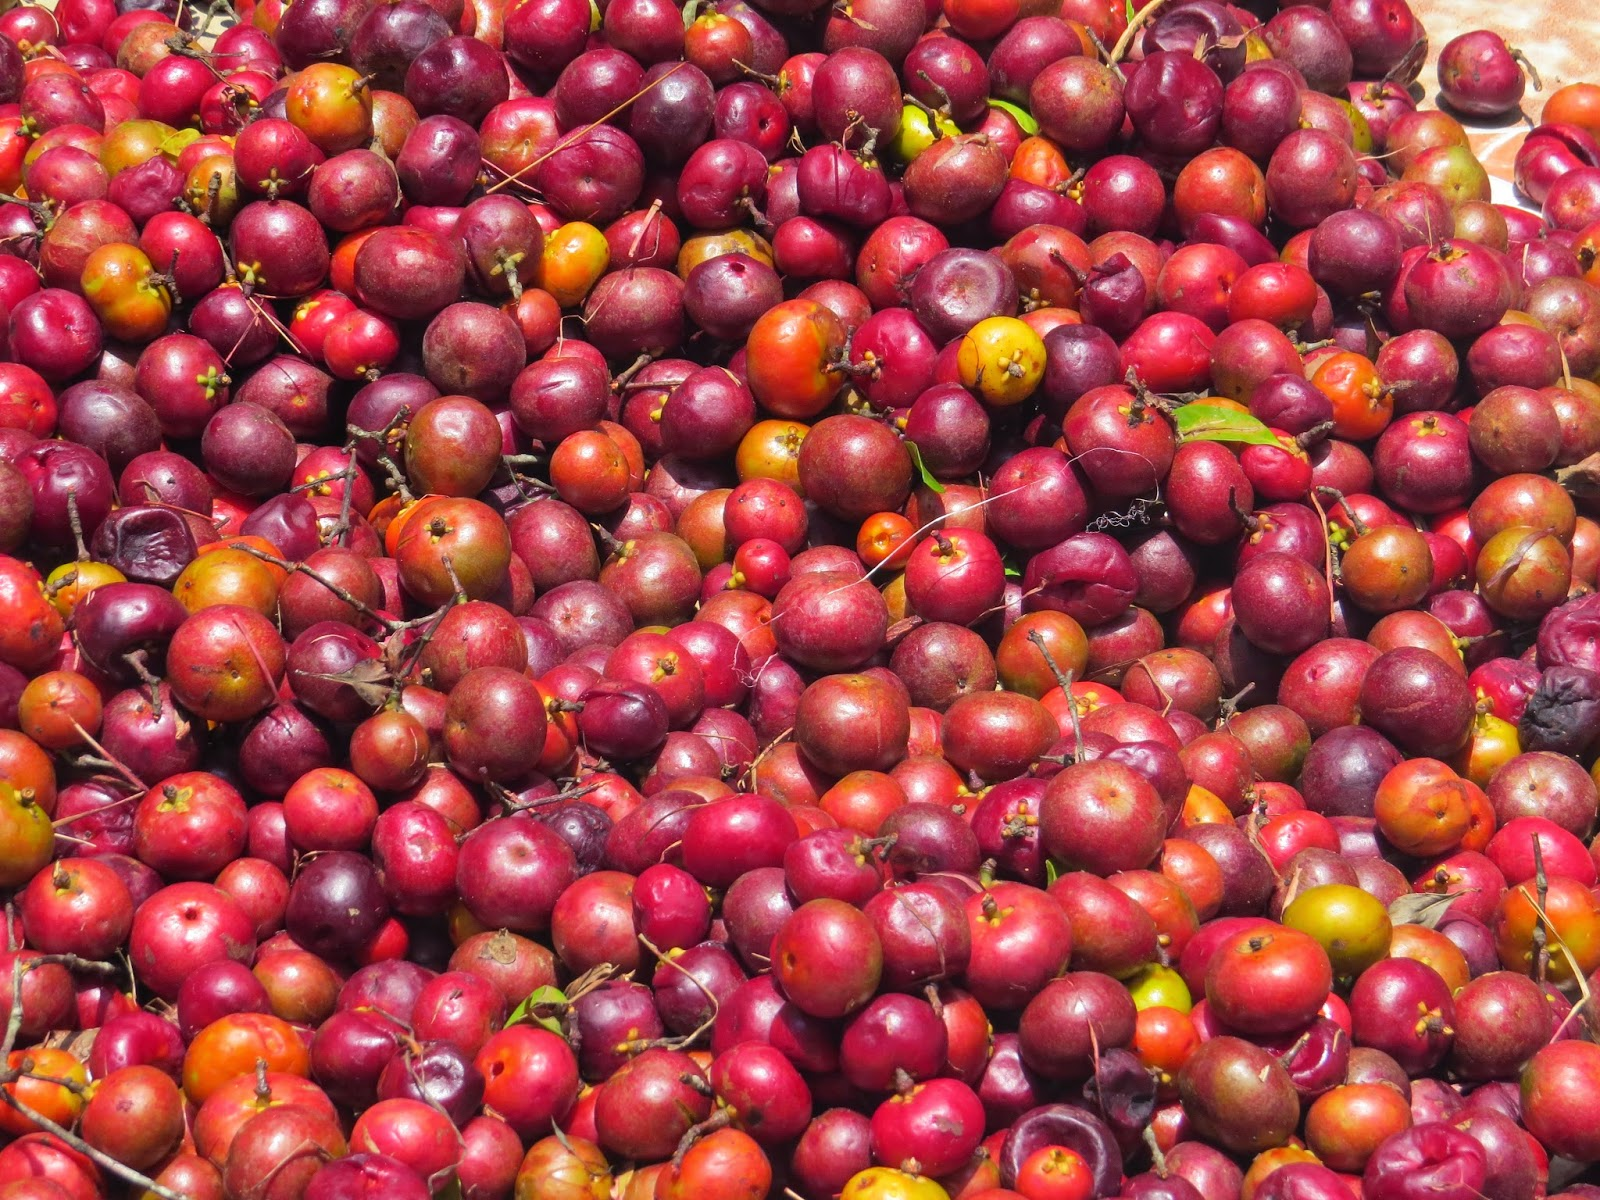 KOKUM: The healing and cooling spice